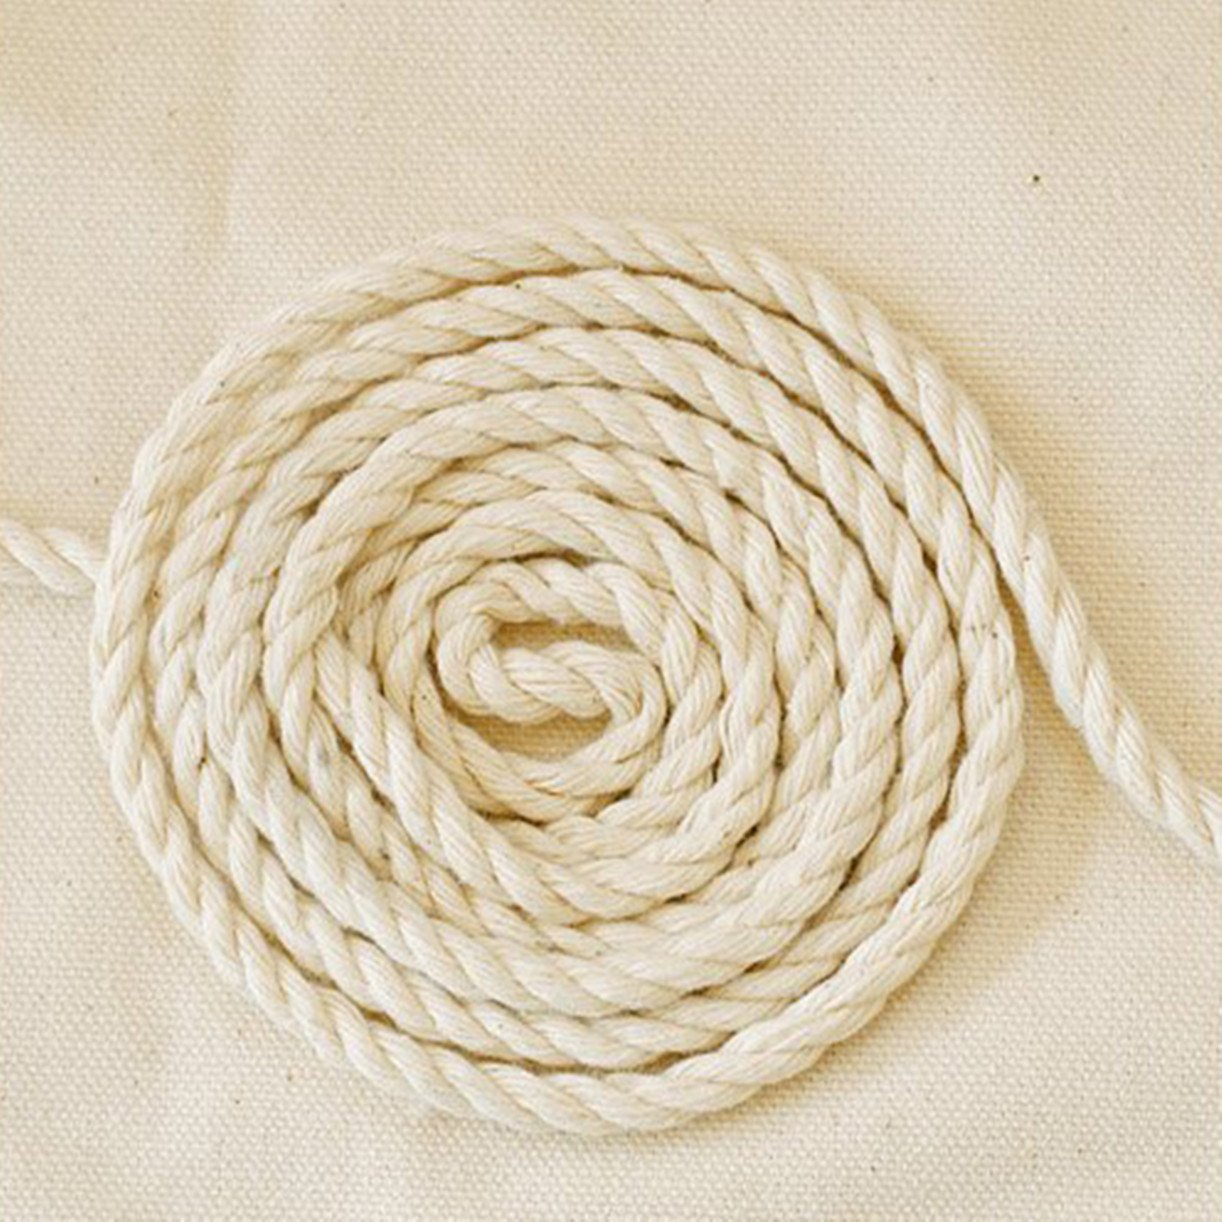 WellieSTR (100Metters/109yards) 3 Shares Twisted Cotton Cords 8mm BEIGE DIY Craft Decoration Rope Cotton Cord for Bag Drawstring Belt by WellieSTR (Image #4)